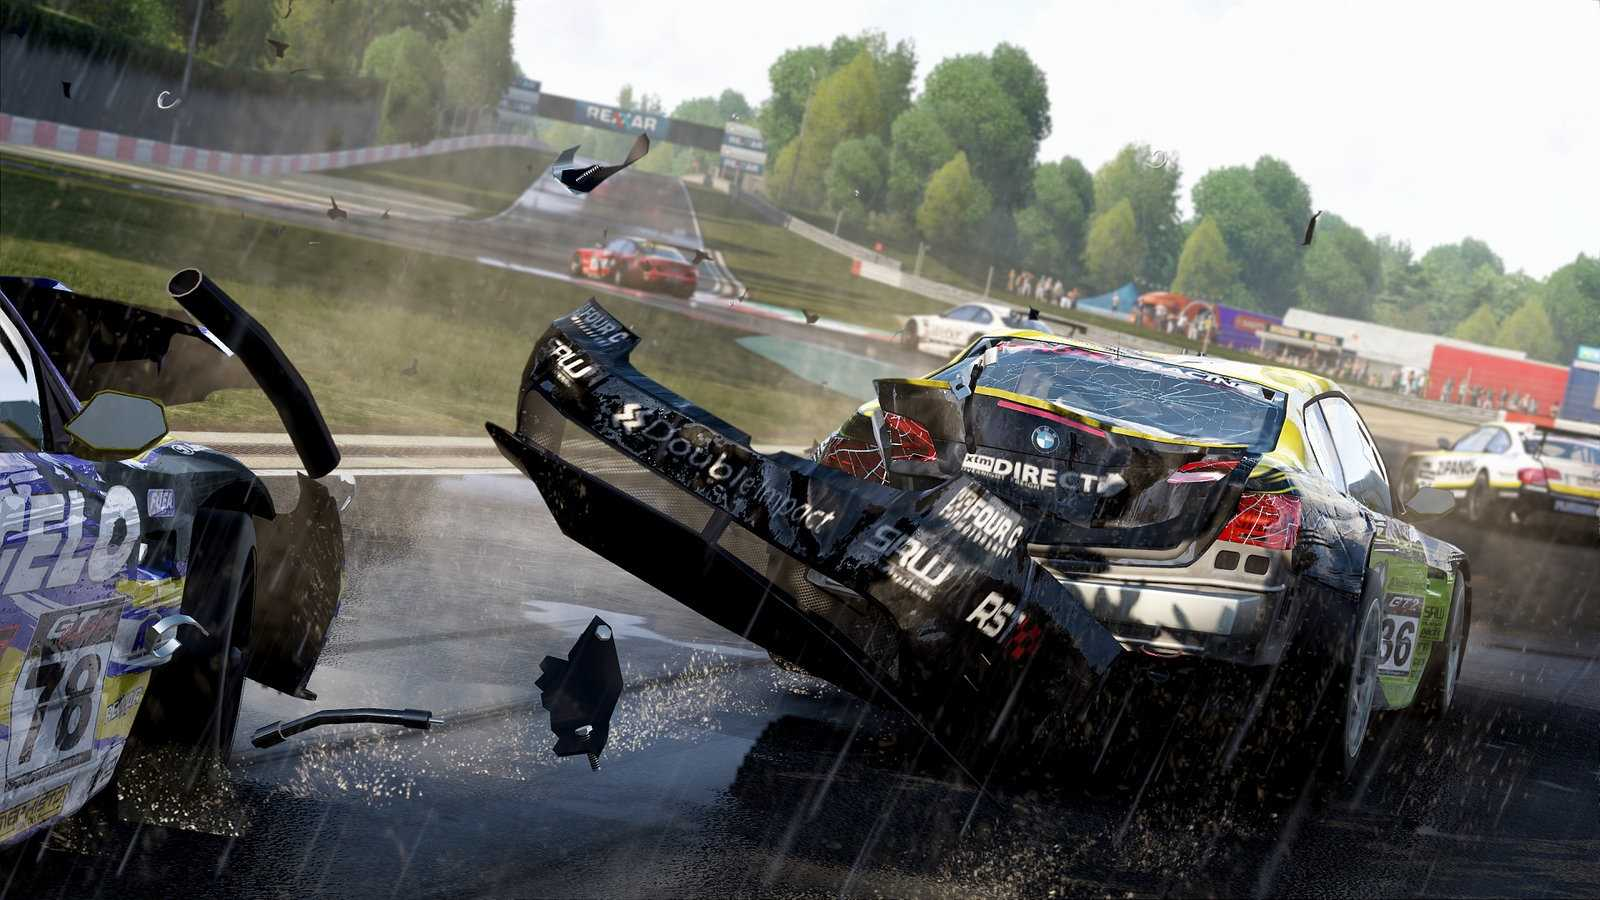 Project Cars: Improved VR support with patch 3.0